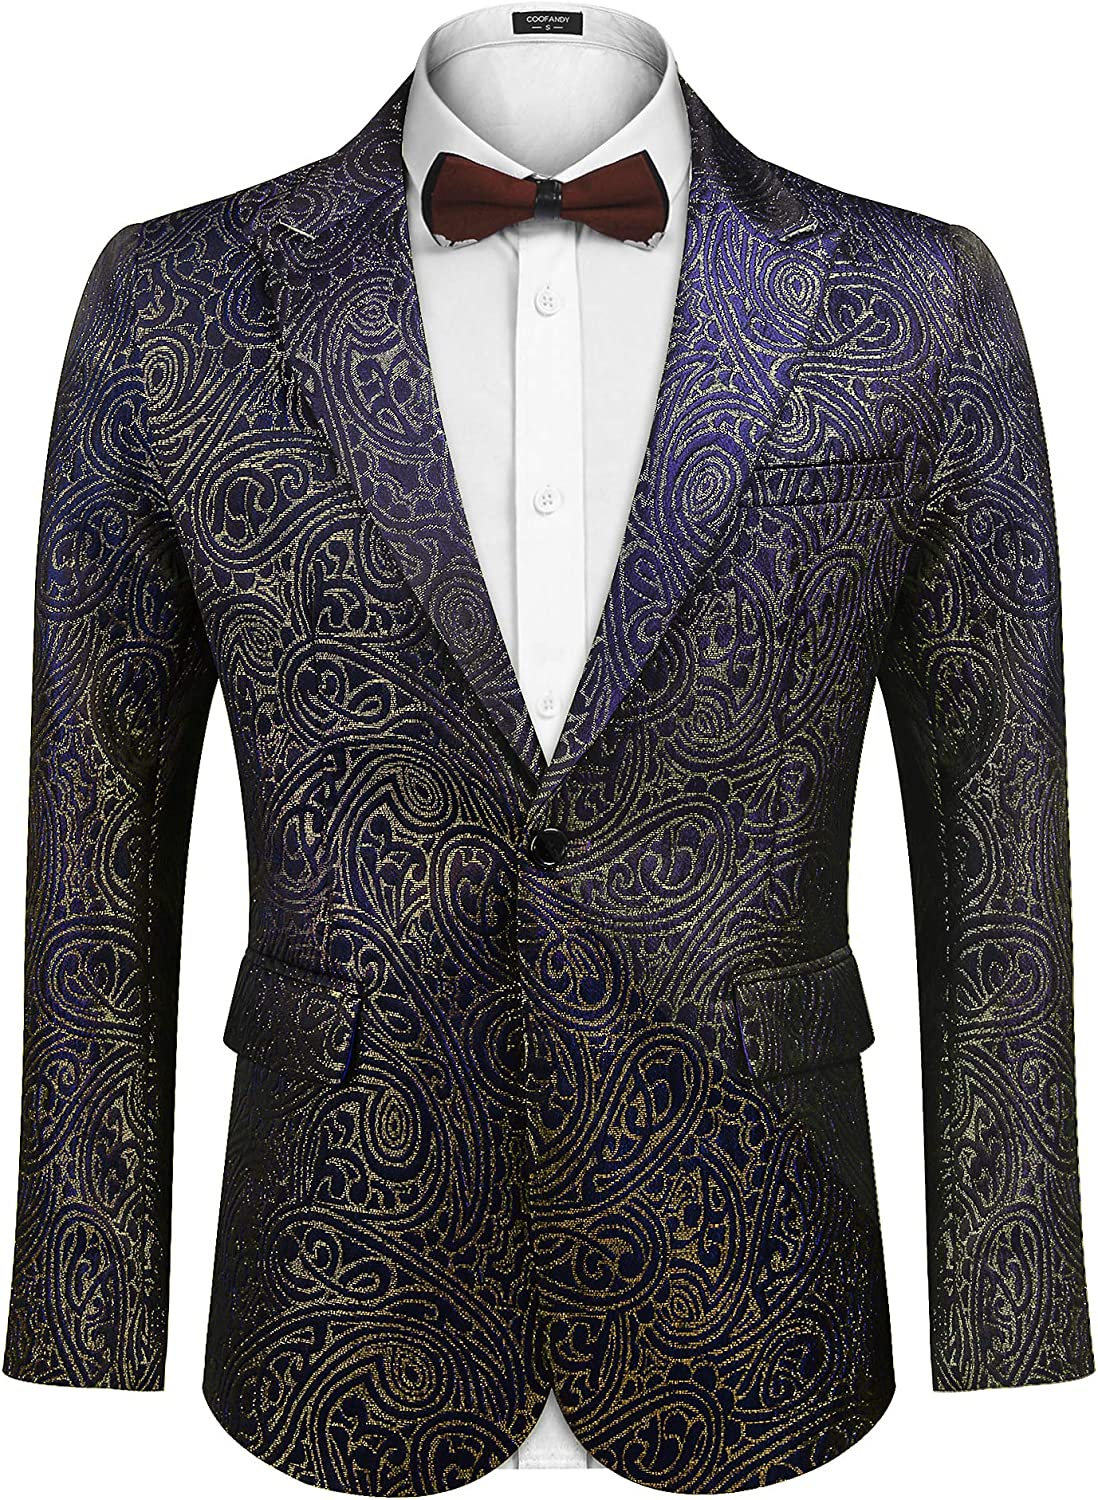 COOFANDY Men's Sequin Blazer Suit Jacket Slim Fit One Button Fashion Tuxedo Jacket for Dinner Party Wedding Prom